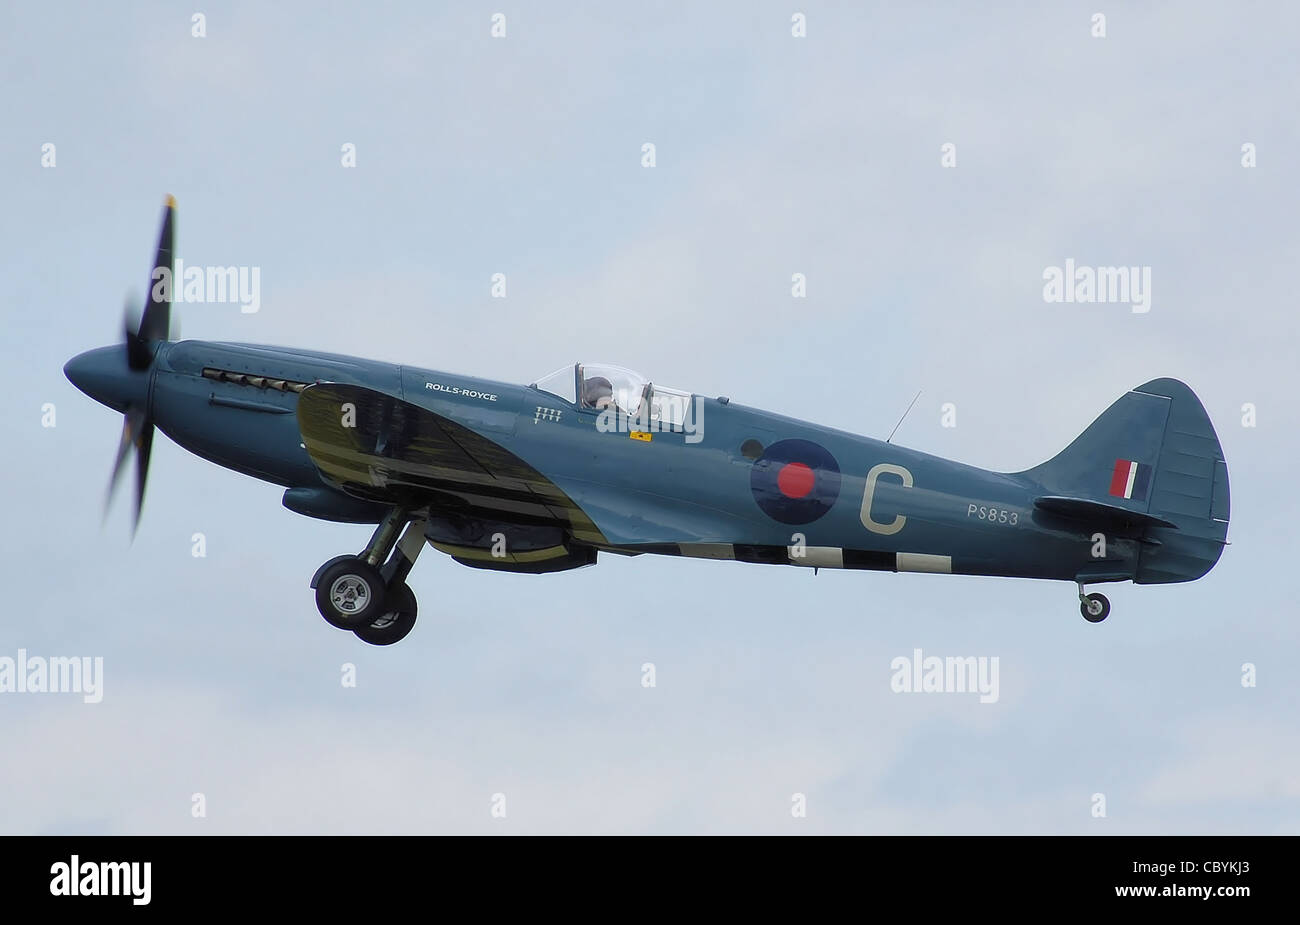 Supermarine Spitfire Mk.PR.XIX (RAF code PS853, now civil registered as G-RRGN) at Kemble Air Day, Kemble Airport, - Stock Image